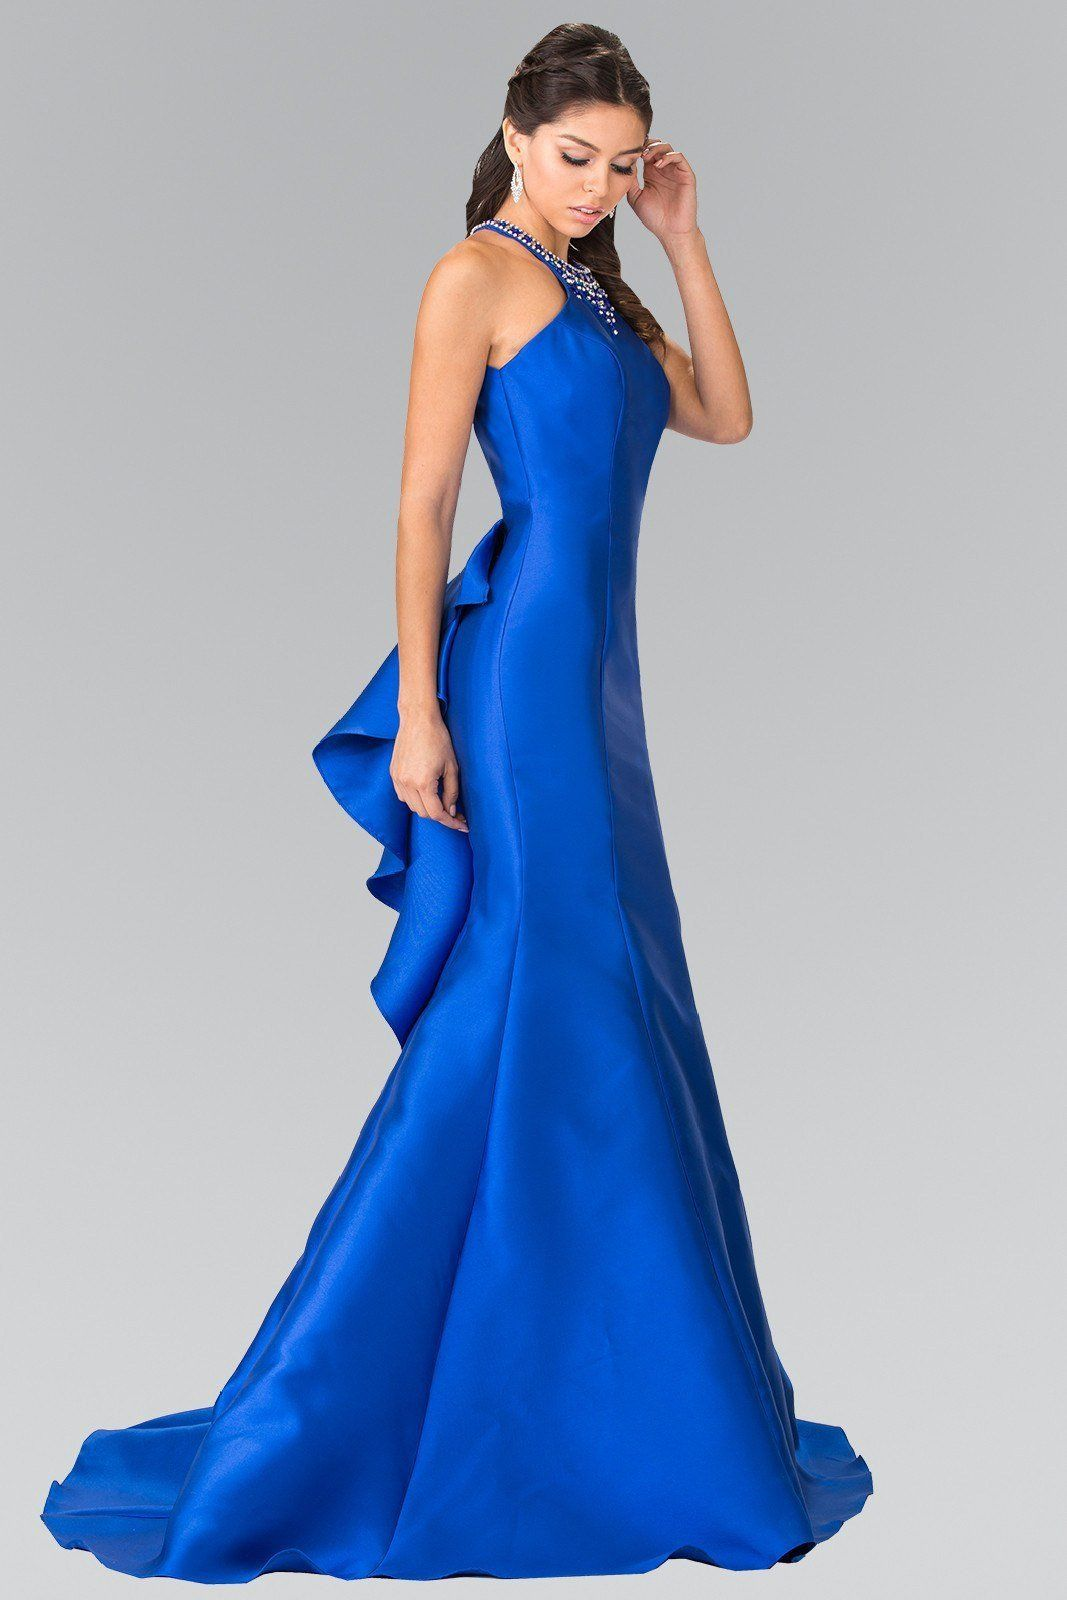 Mermaid satin prom dress gl in blue styles pinterest